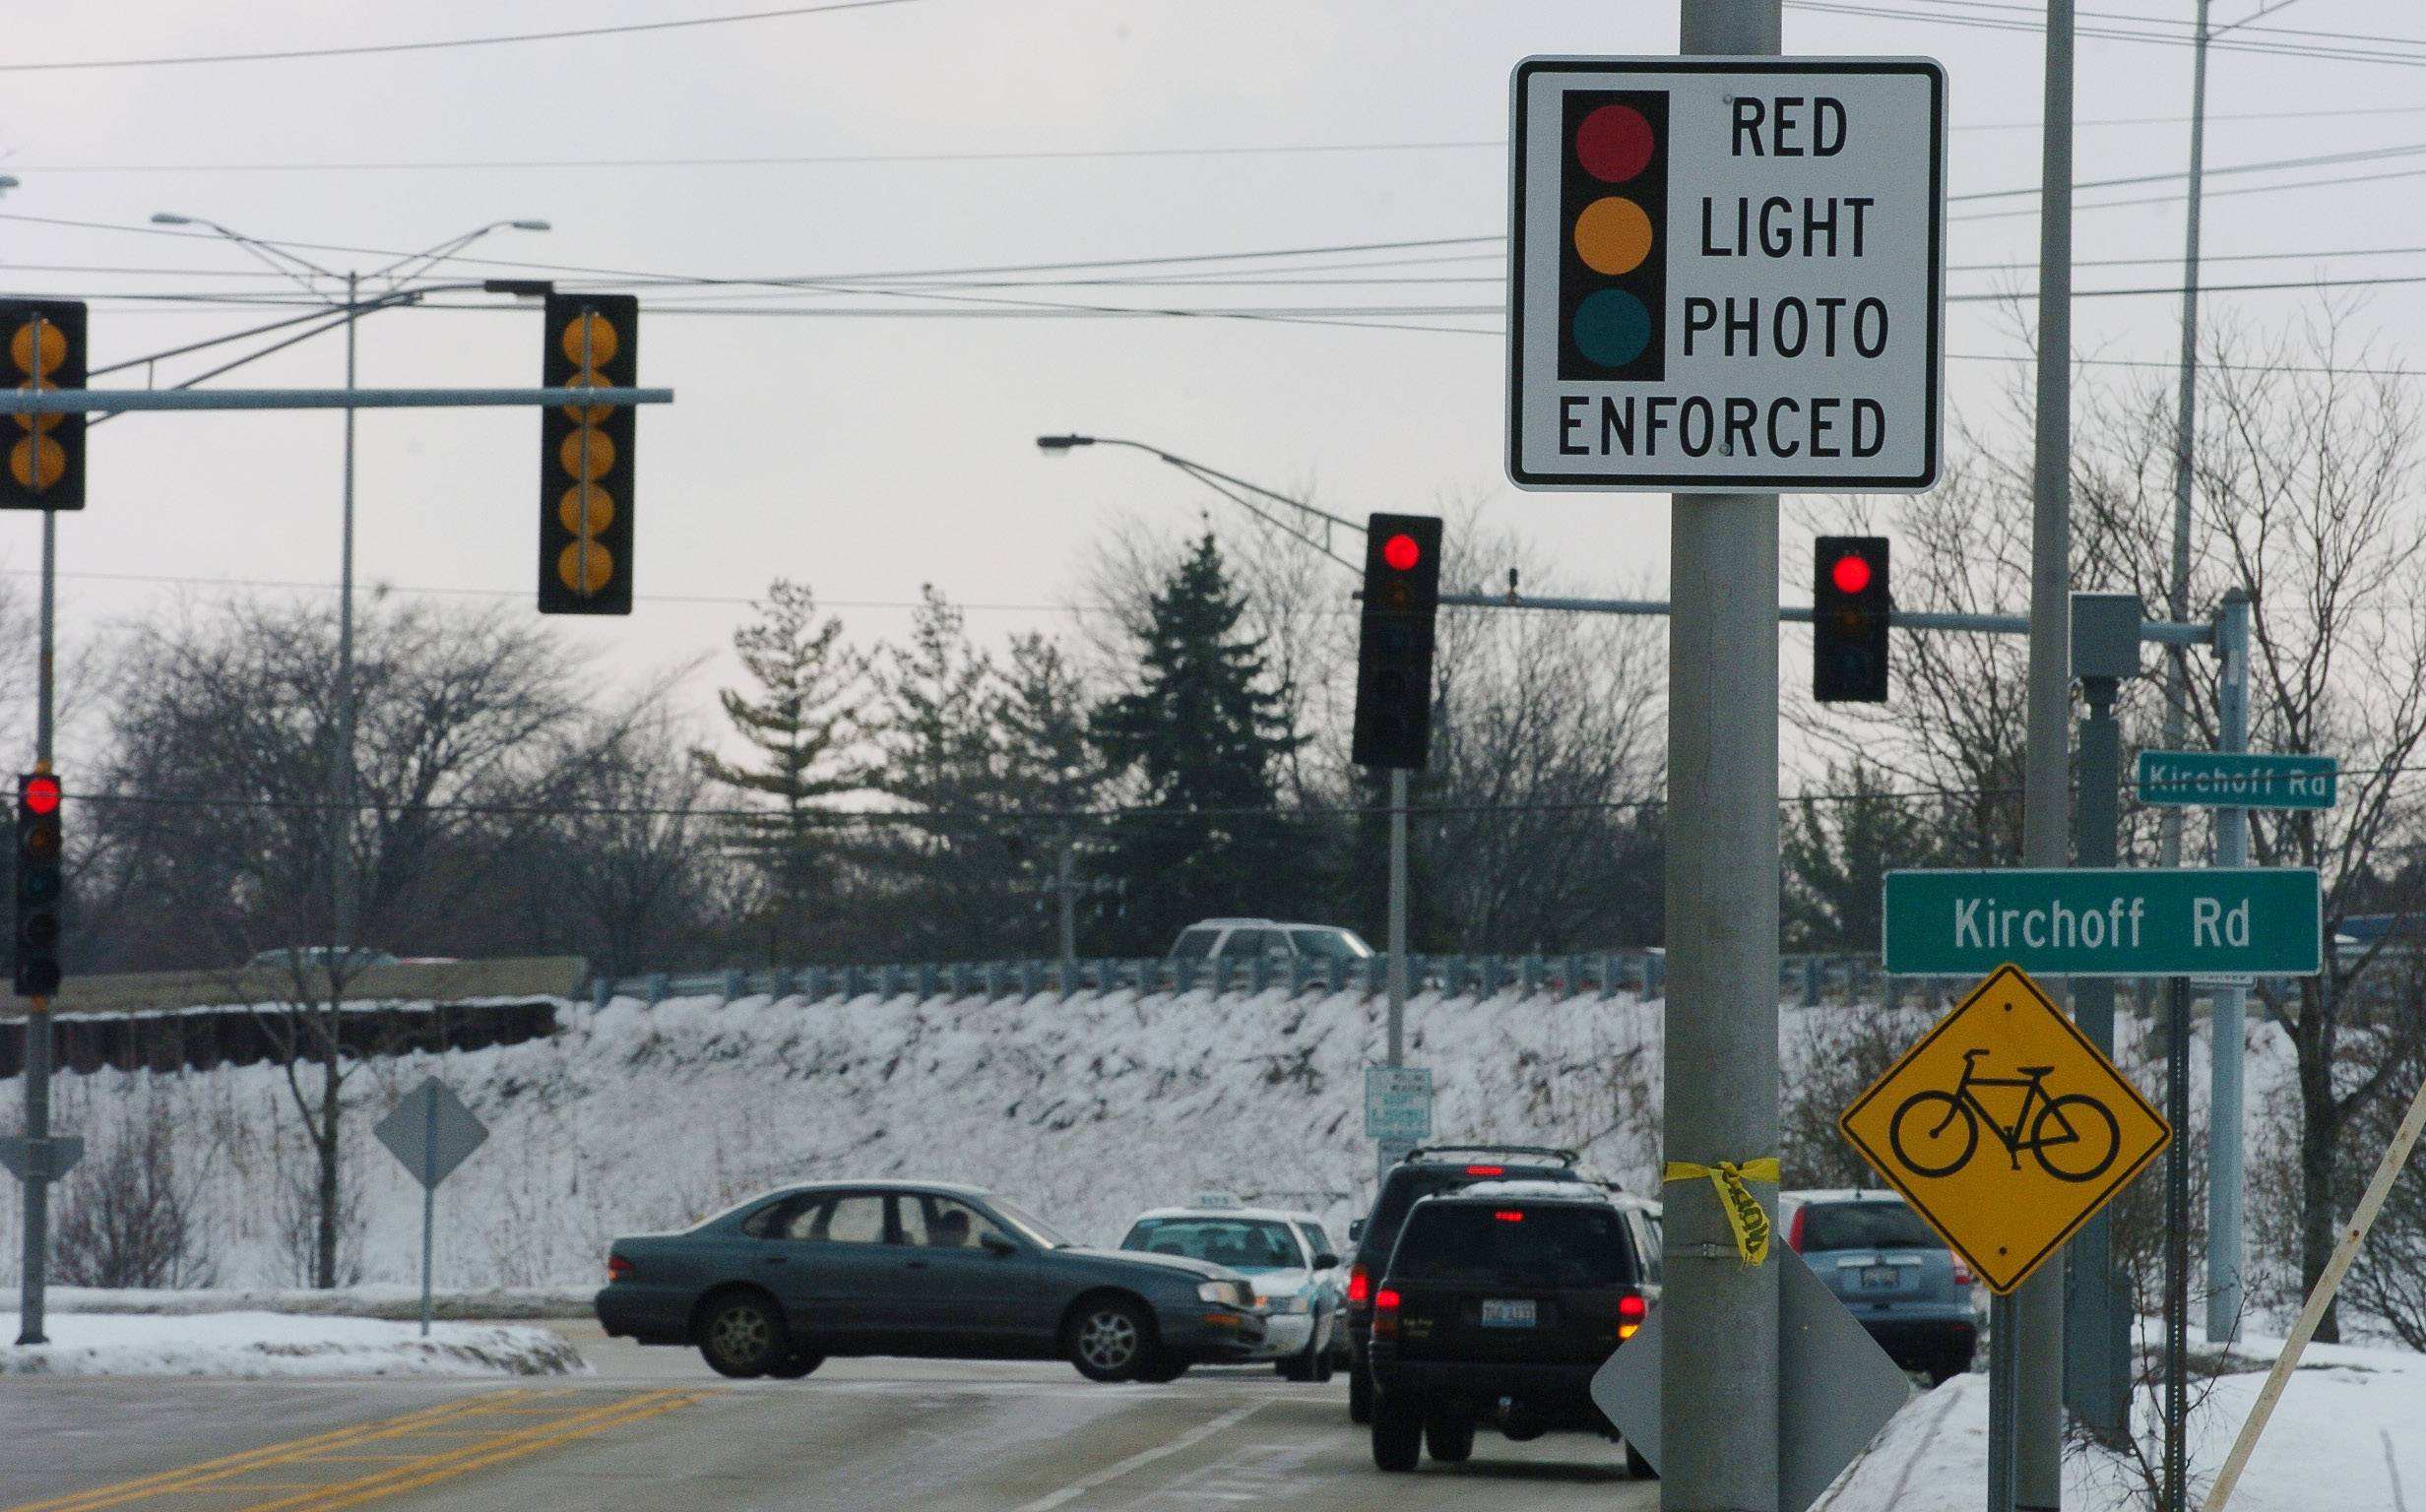 The Illinois Supreme Court took arguments over whether red light cameras are unconstitutional.